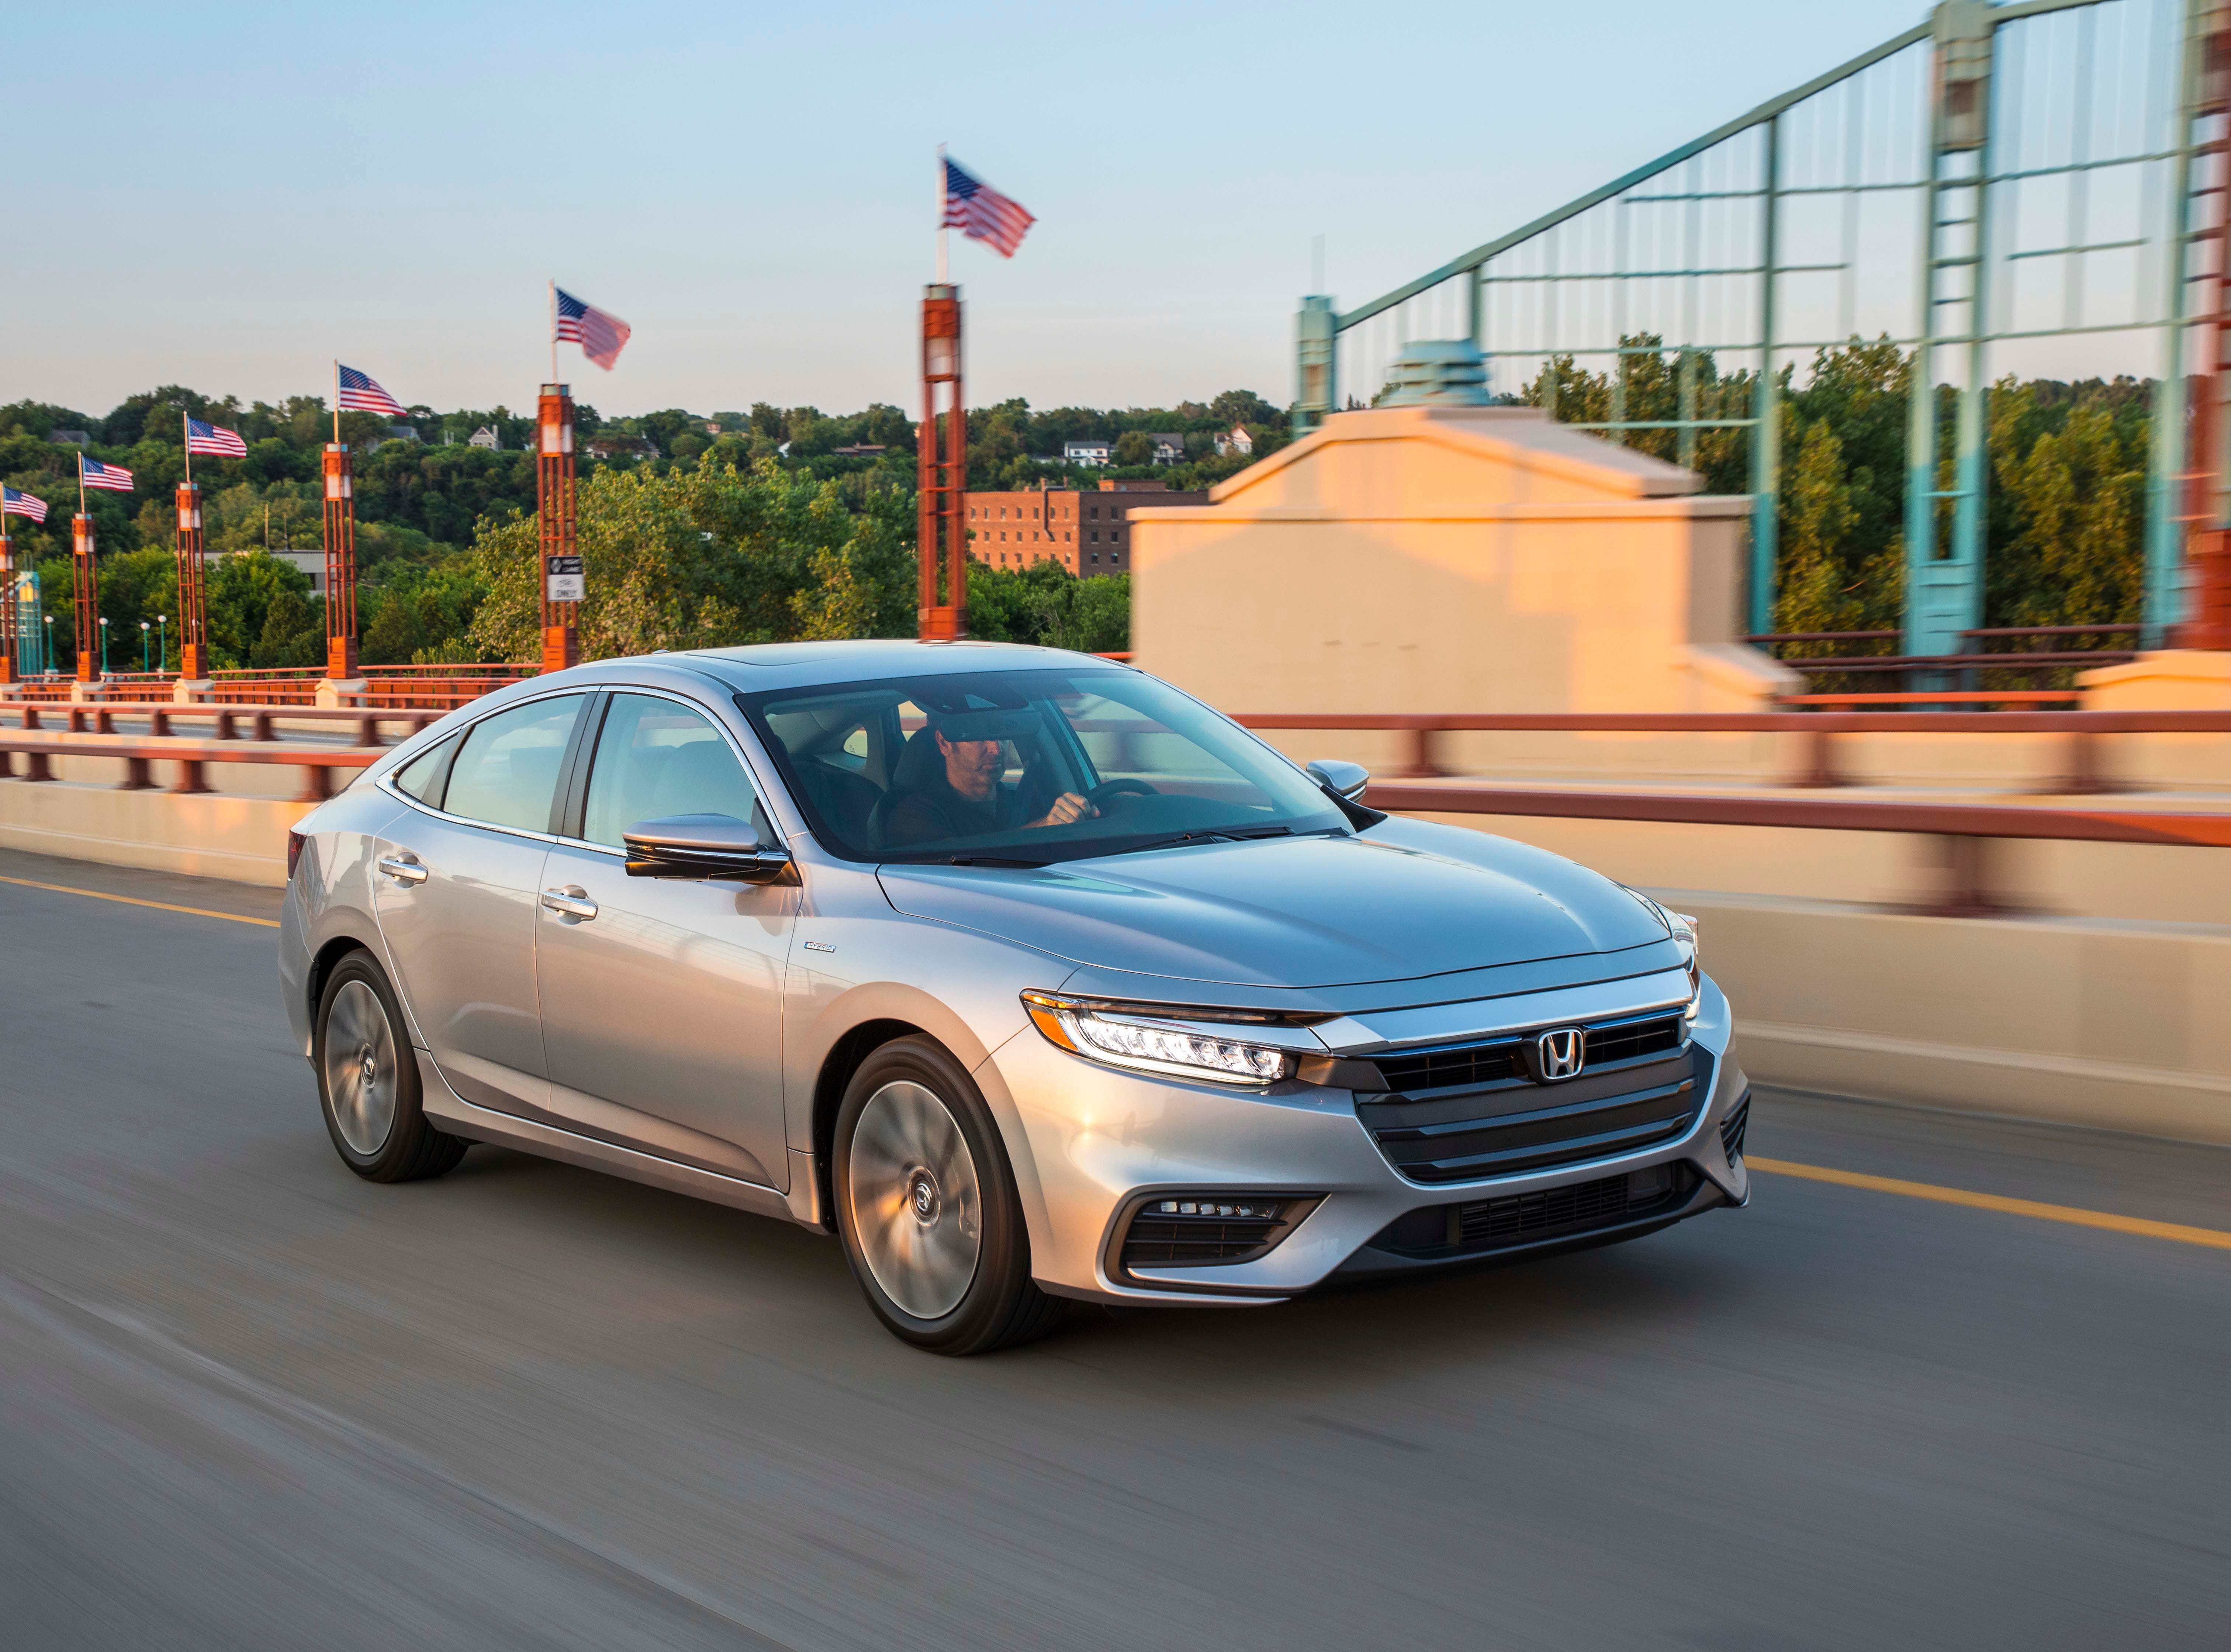 The 2019 Honda Insight sedan has ditched the rear-wheel spats and bubble shape of its predecessors for a more mature, coupe shape.